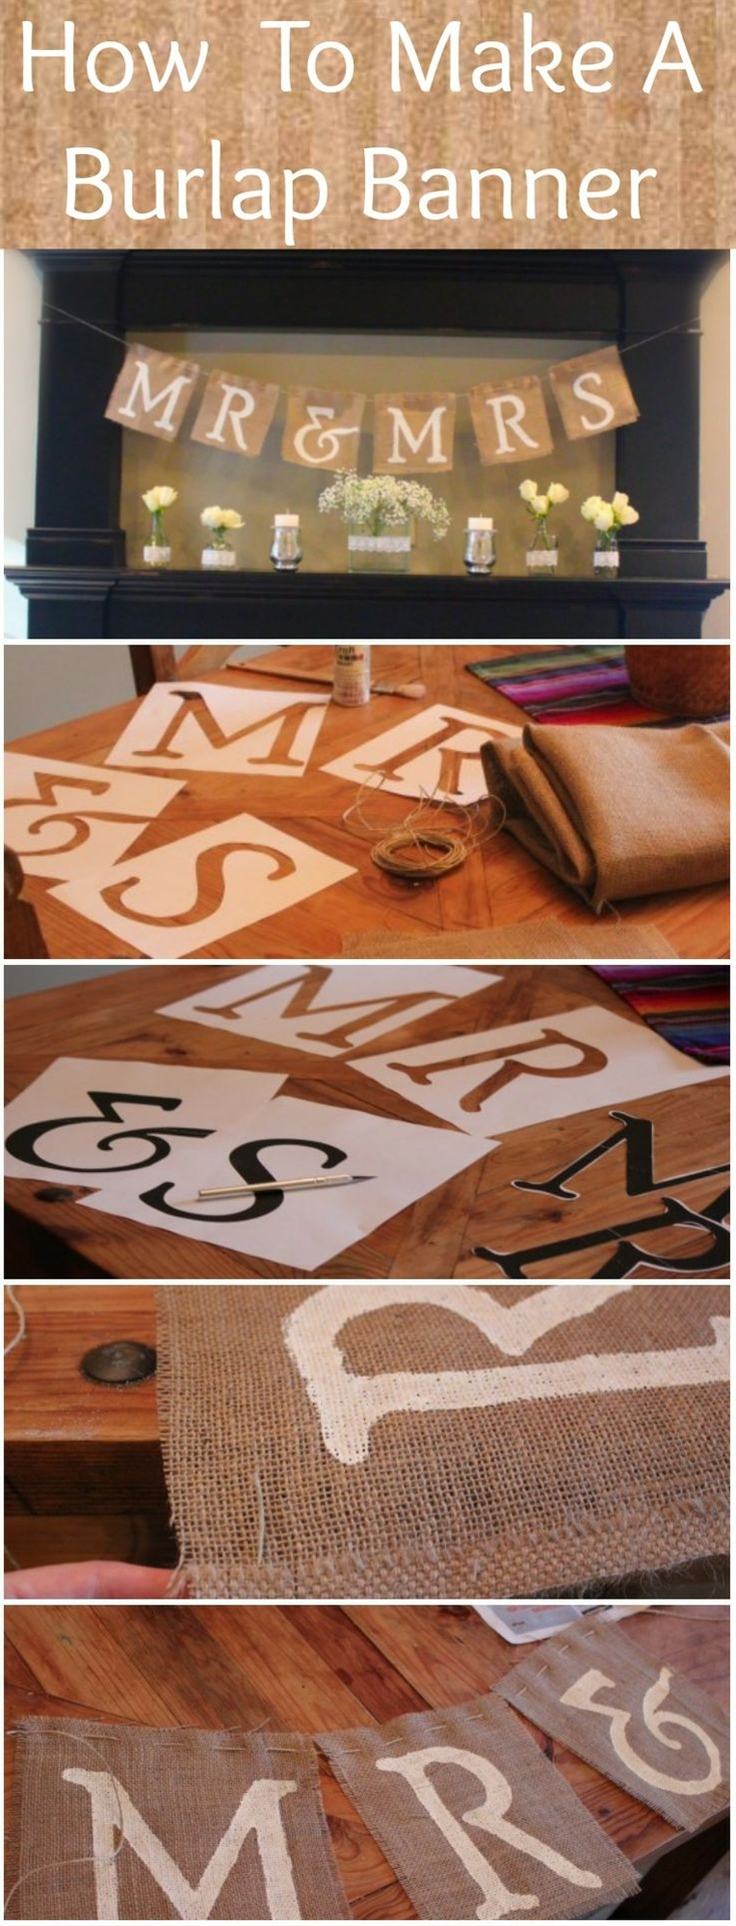 How To Make A Burlap Mr & Mrs Sign-Make on a smaller scale and hang above your wedding photos.